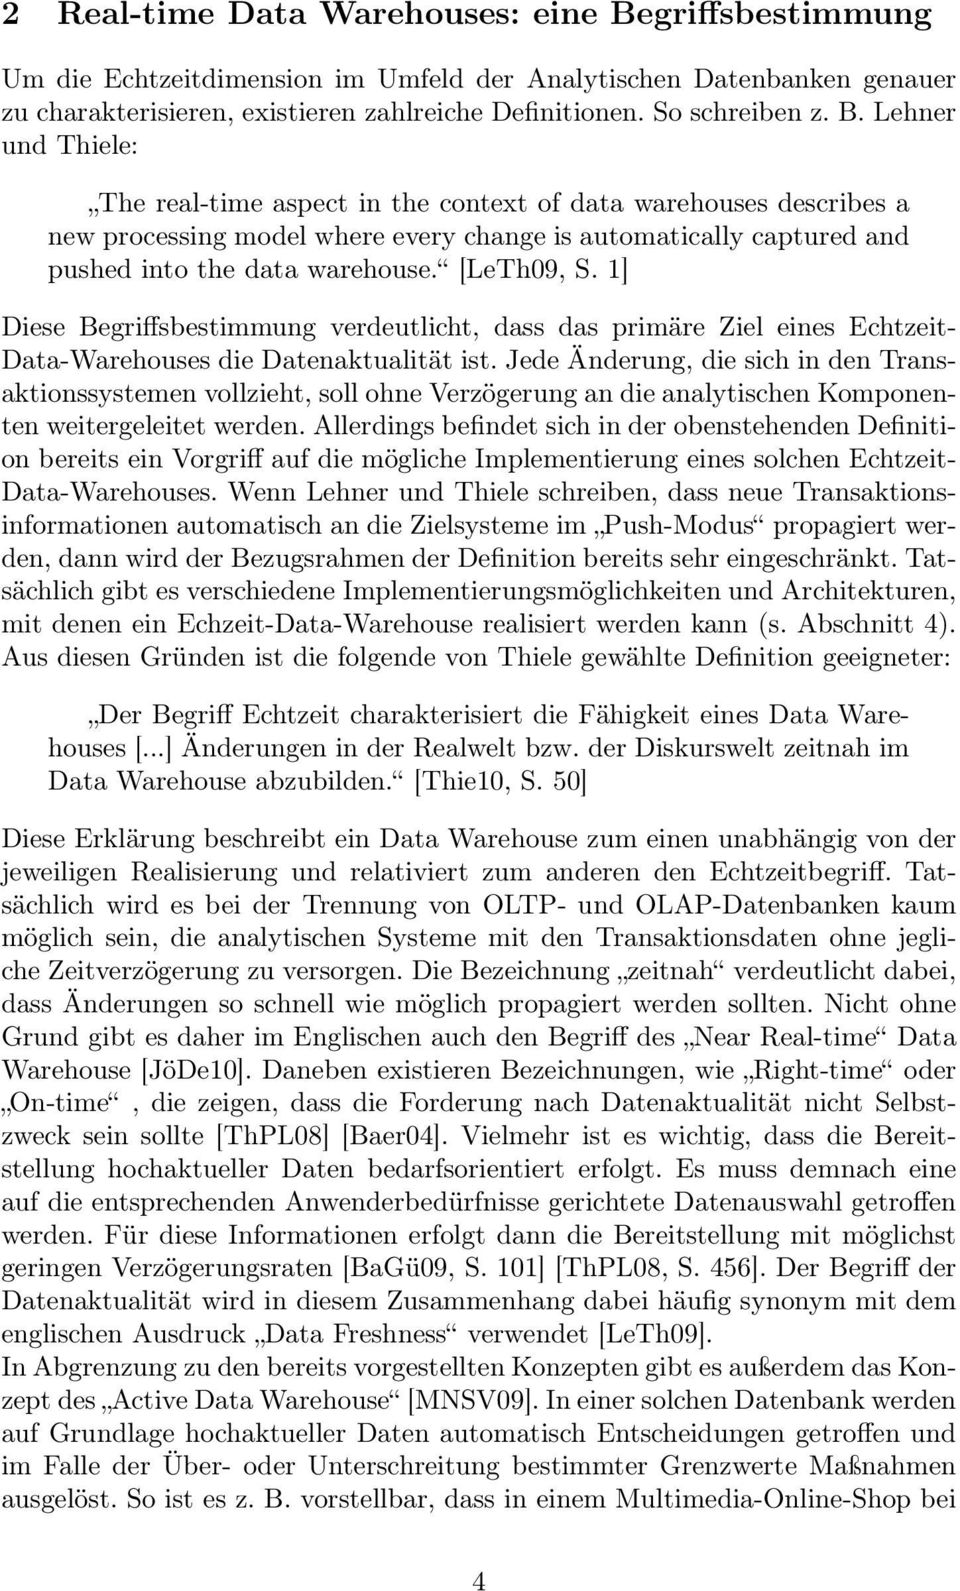 Lehner und Thiele: The real-time aspect in the context of data warehouses describes a new processing model where every change is automatically captured and pushed into the data warehouse. [LeTh09, S.